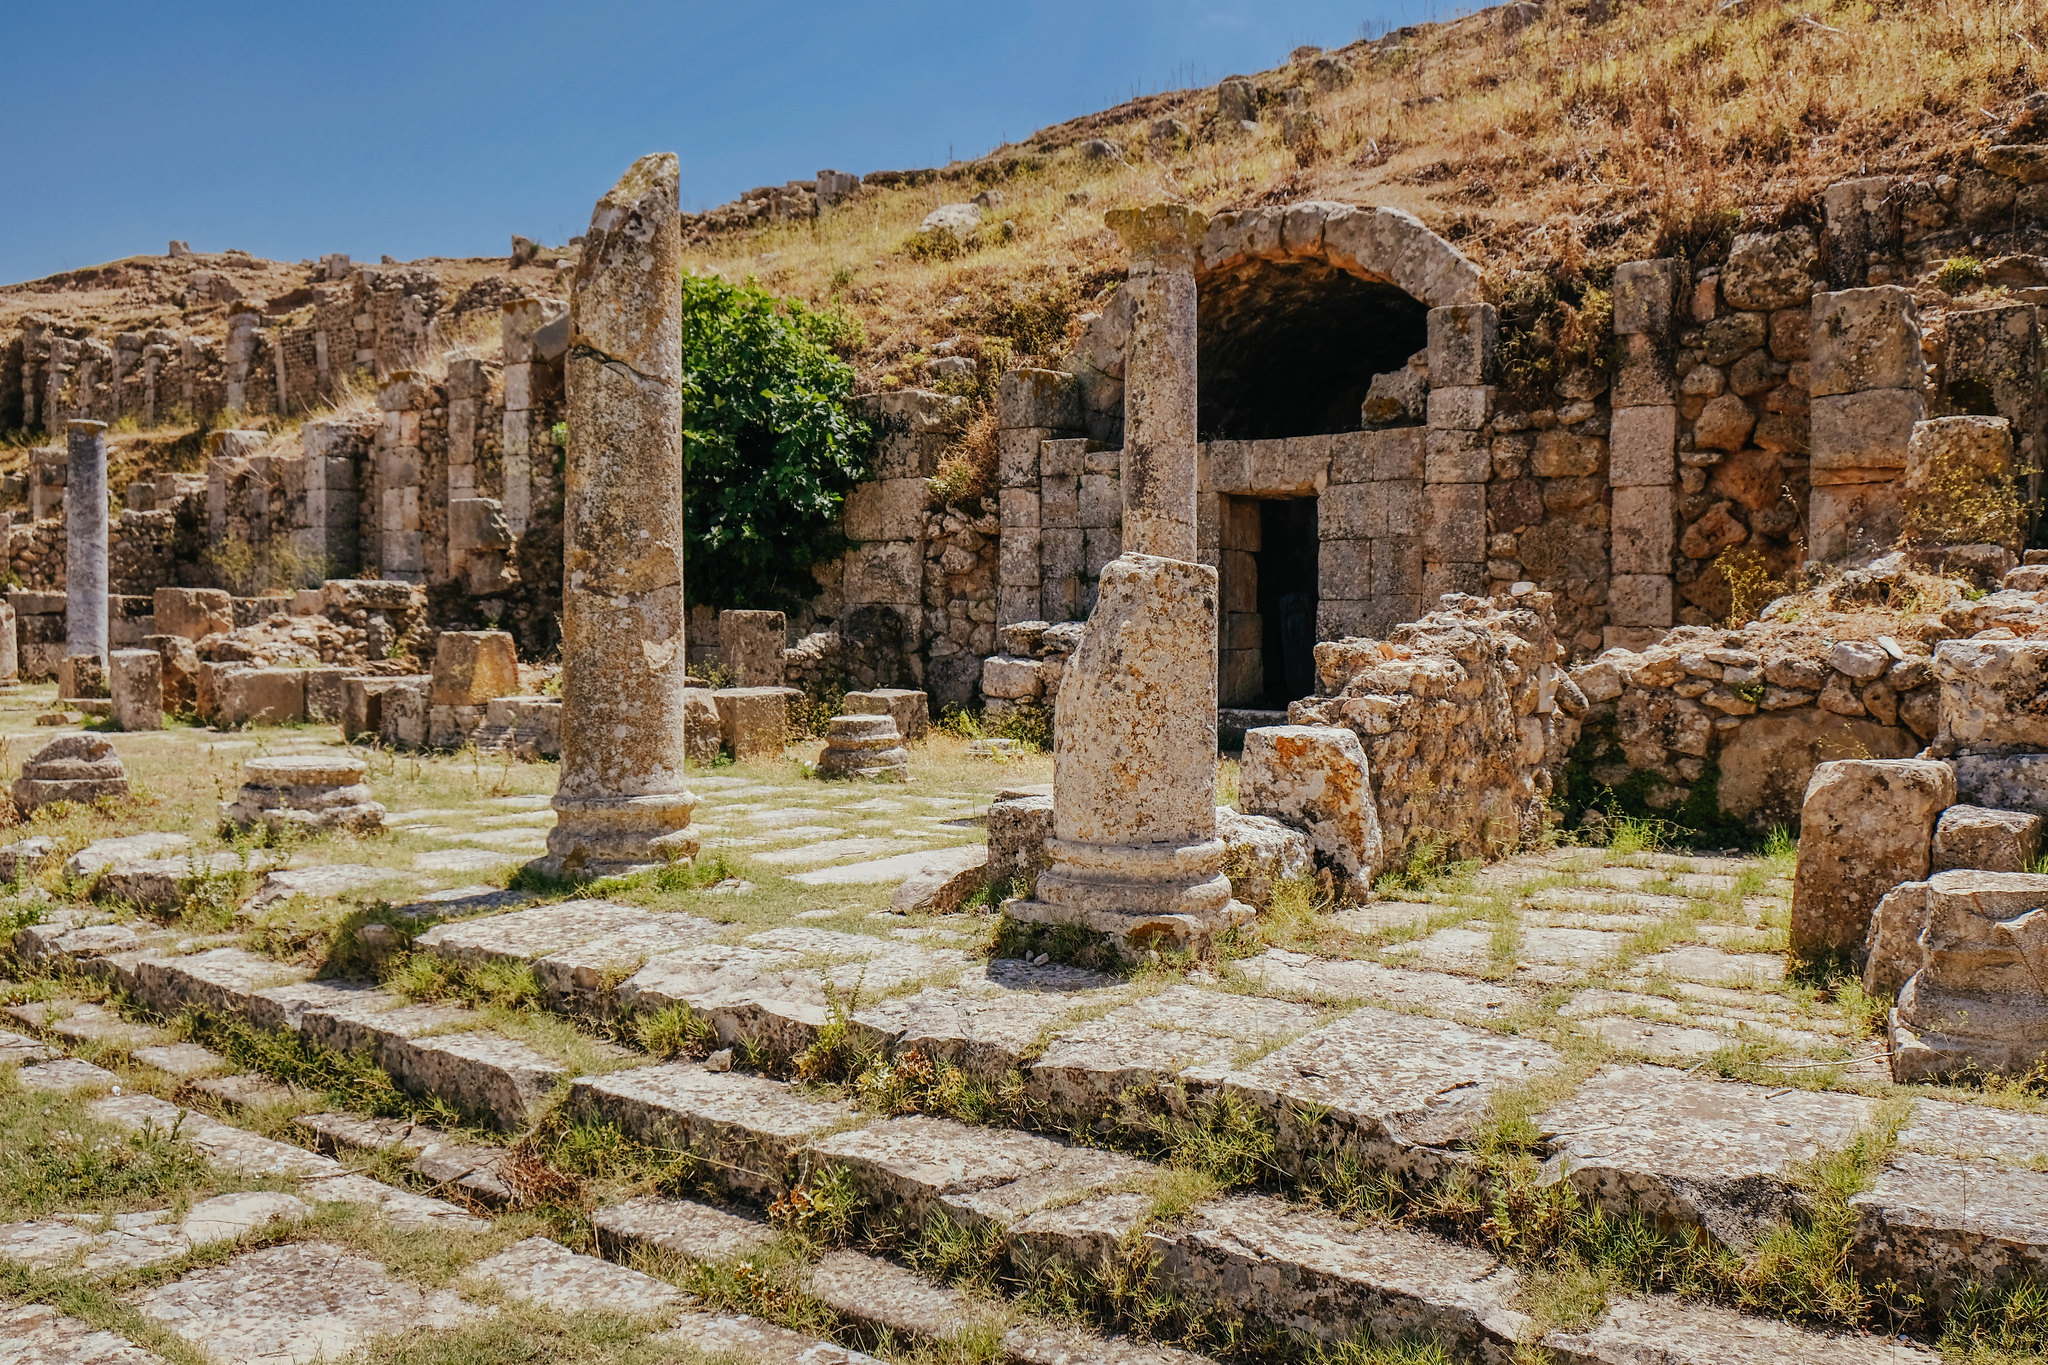 Forum of Khemissa